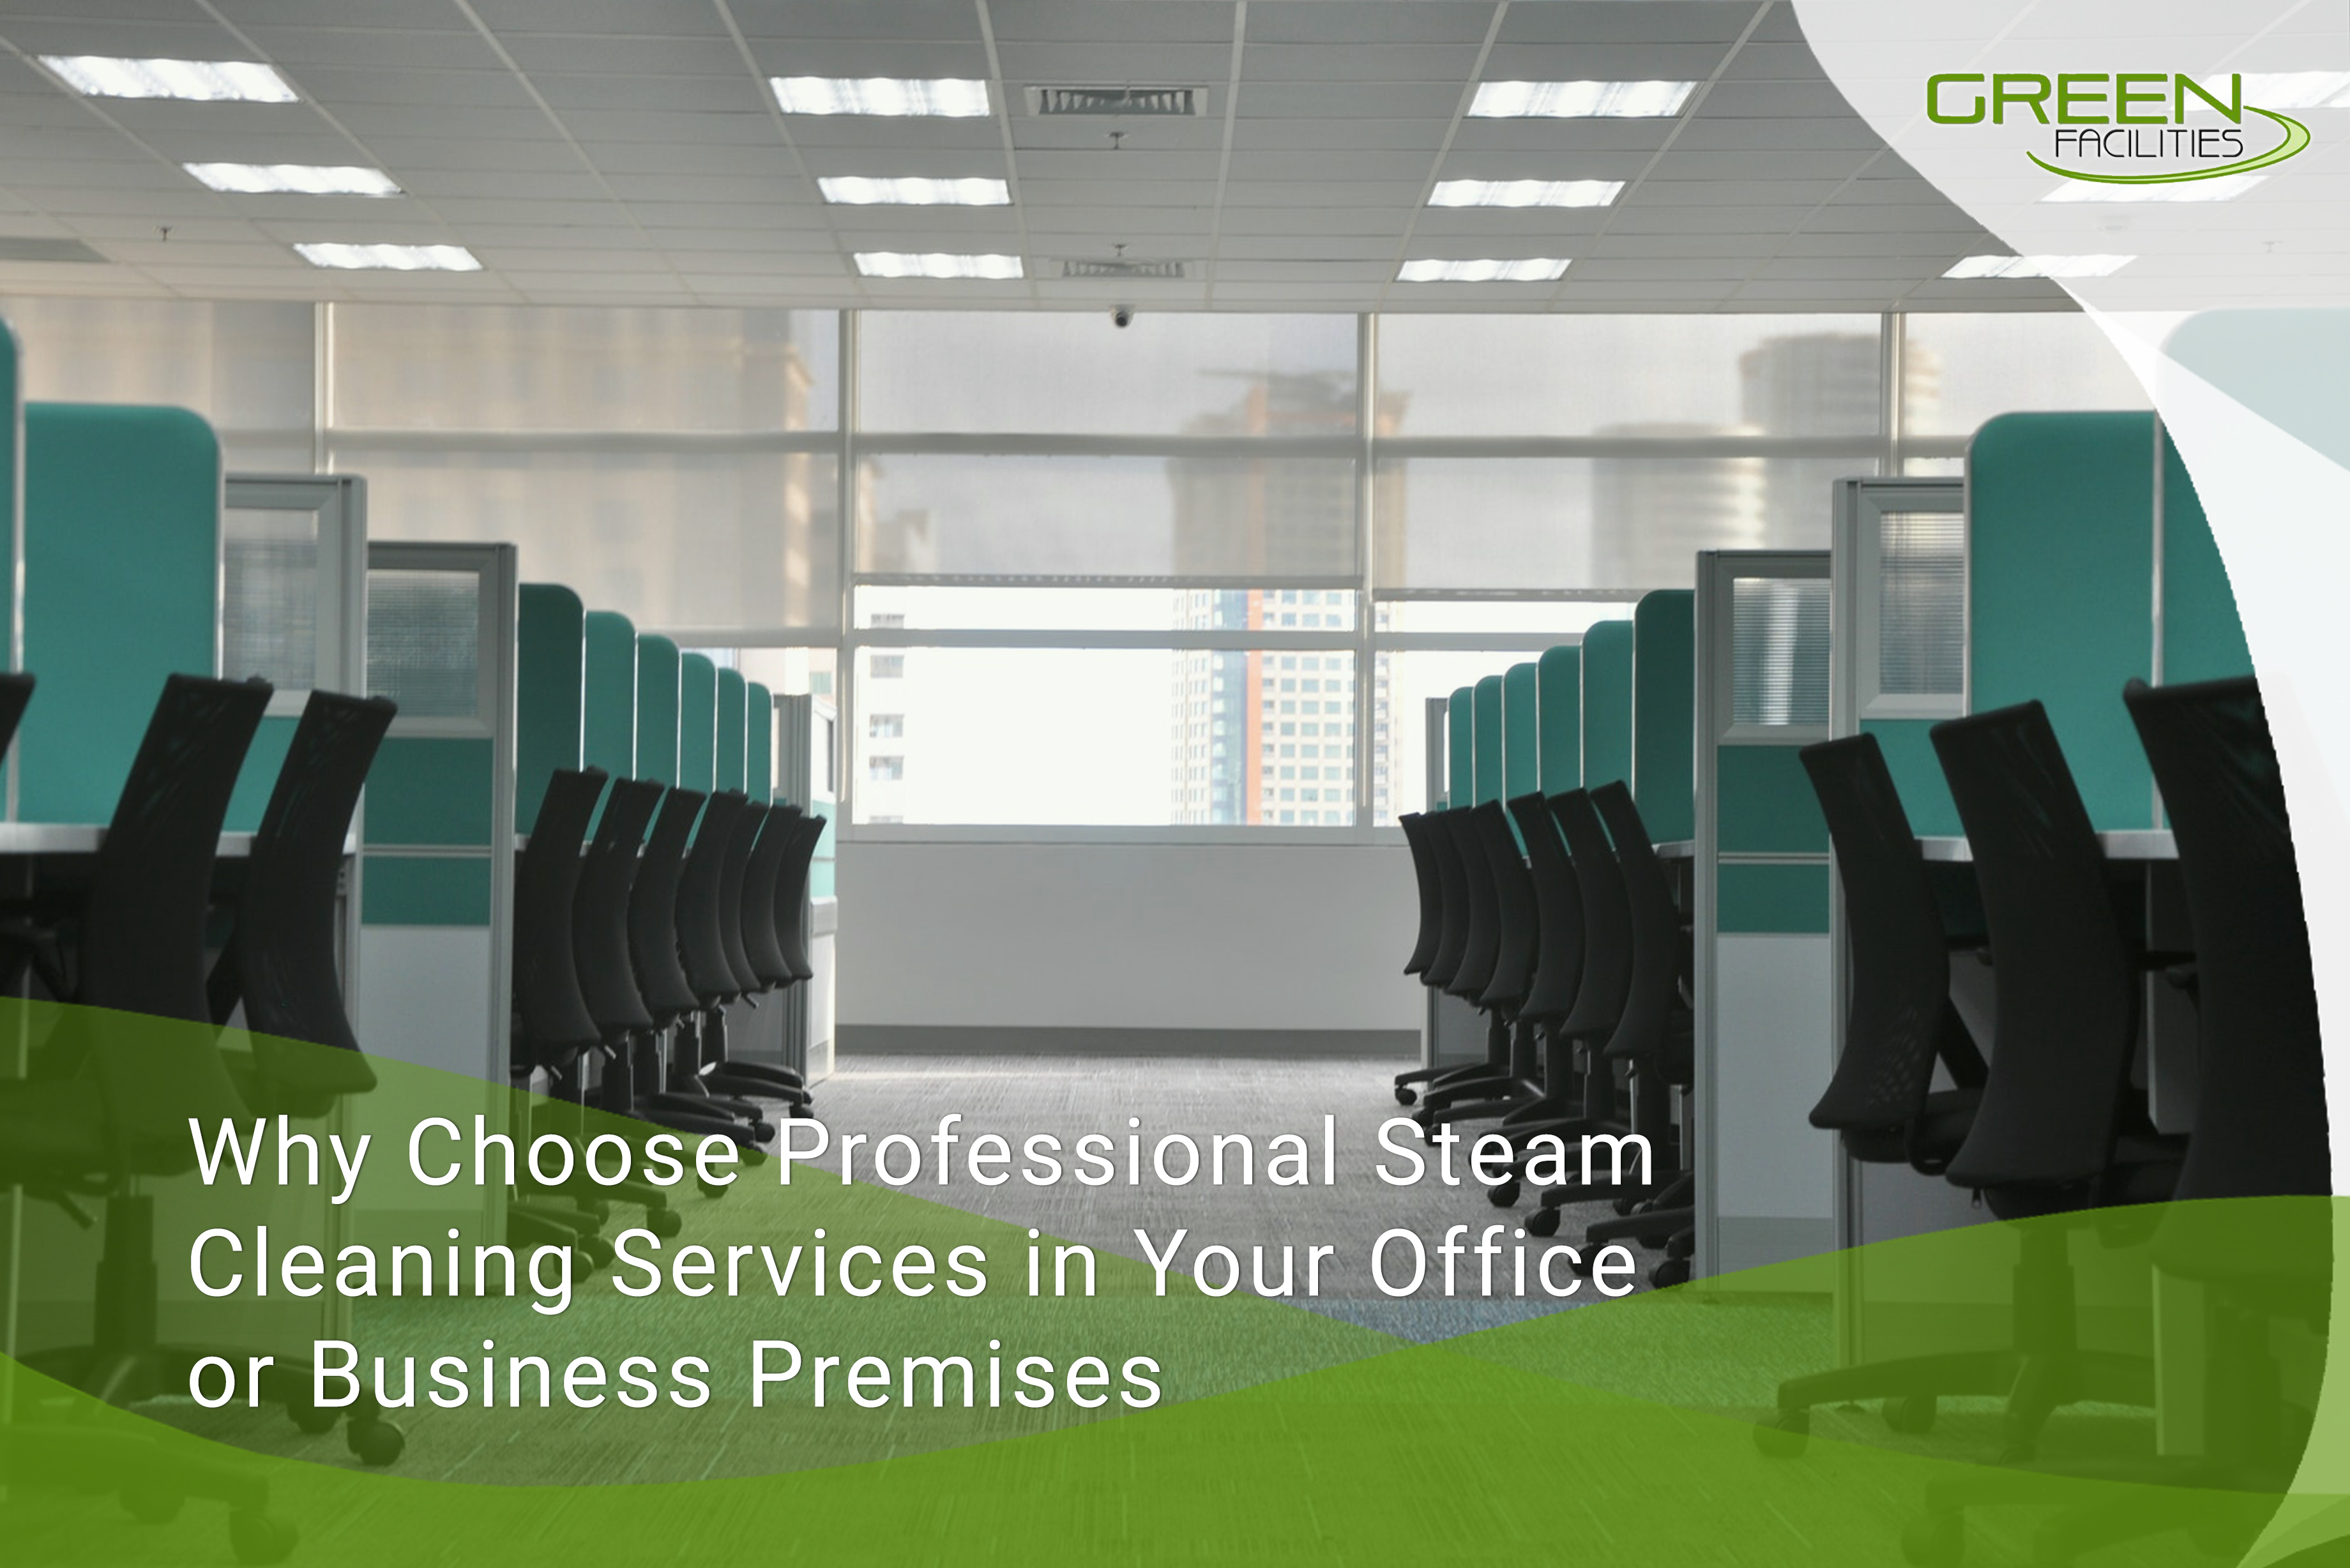 Why-Choose-Professional-Steam-Cleaning-Services-in-Your-Office-or-Business-Premises-1